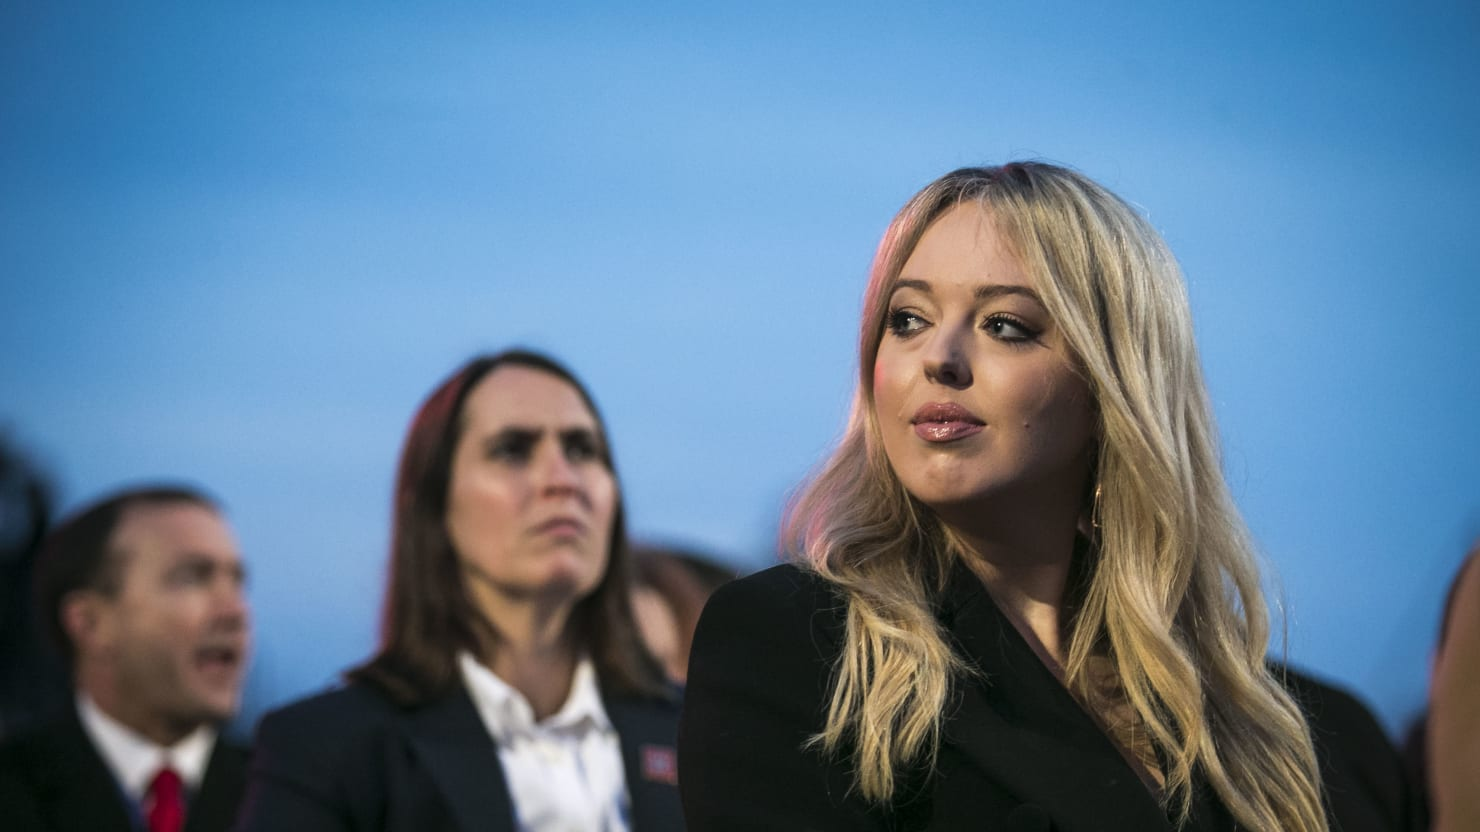 Tiffany Trump Joins in 'Blackout Tuesday' Campaign - The Daily Beast